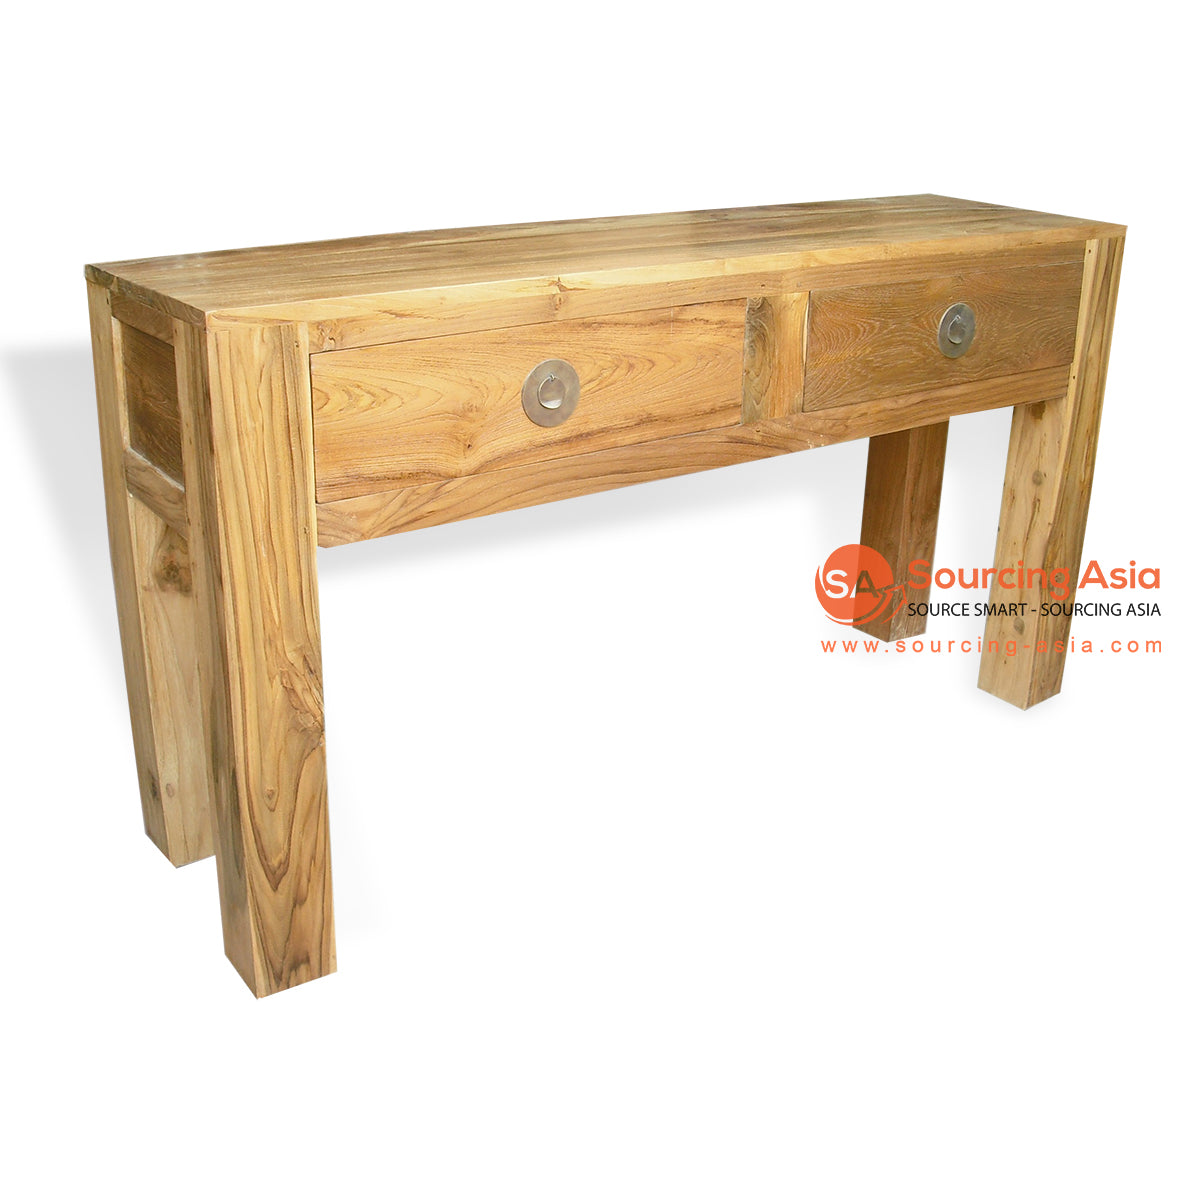 KYT10054 CONSOLE TABLE